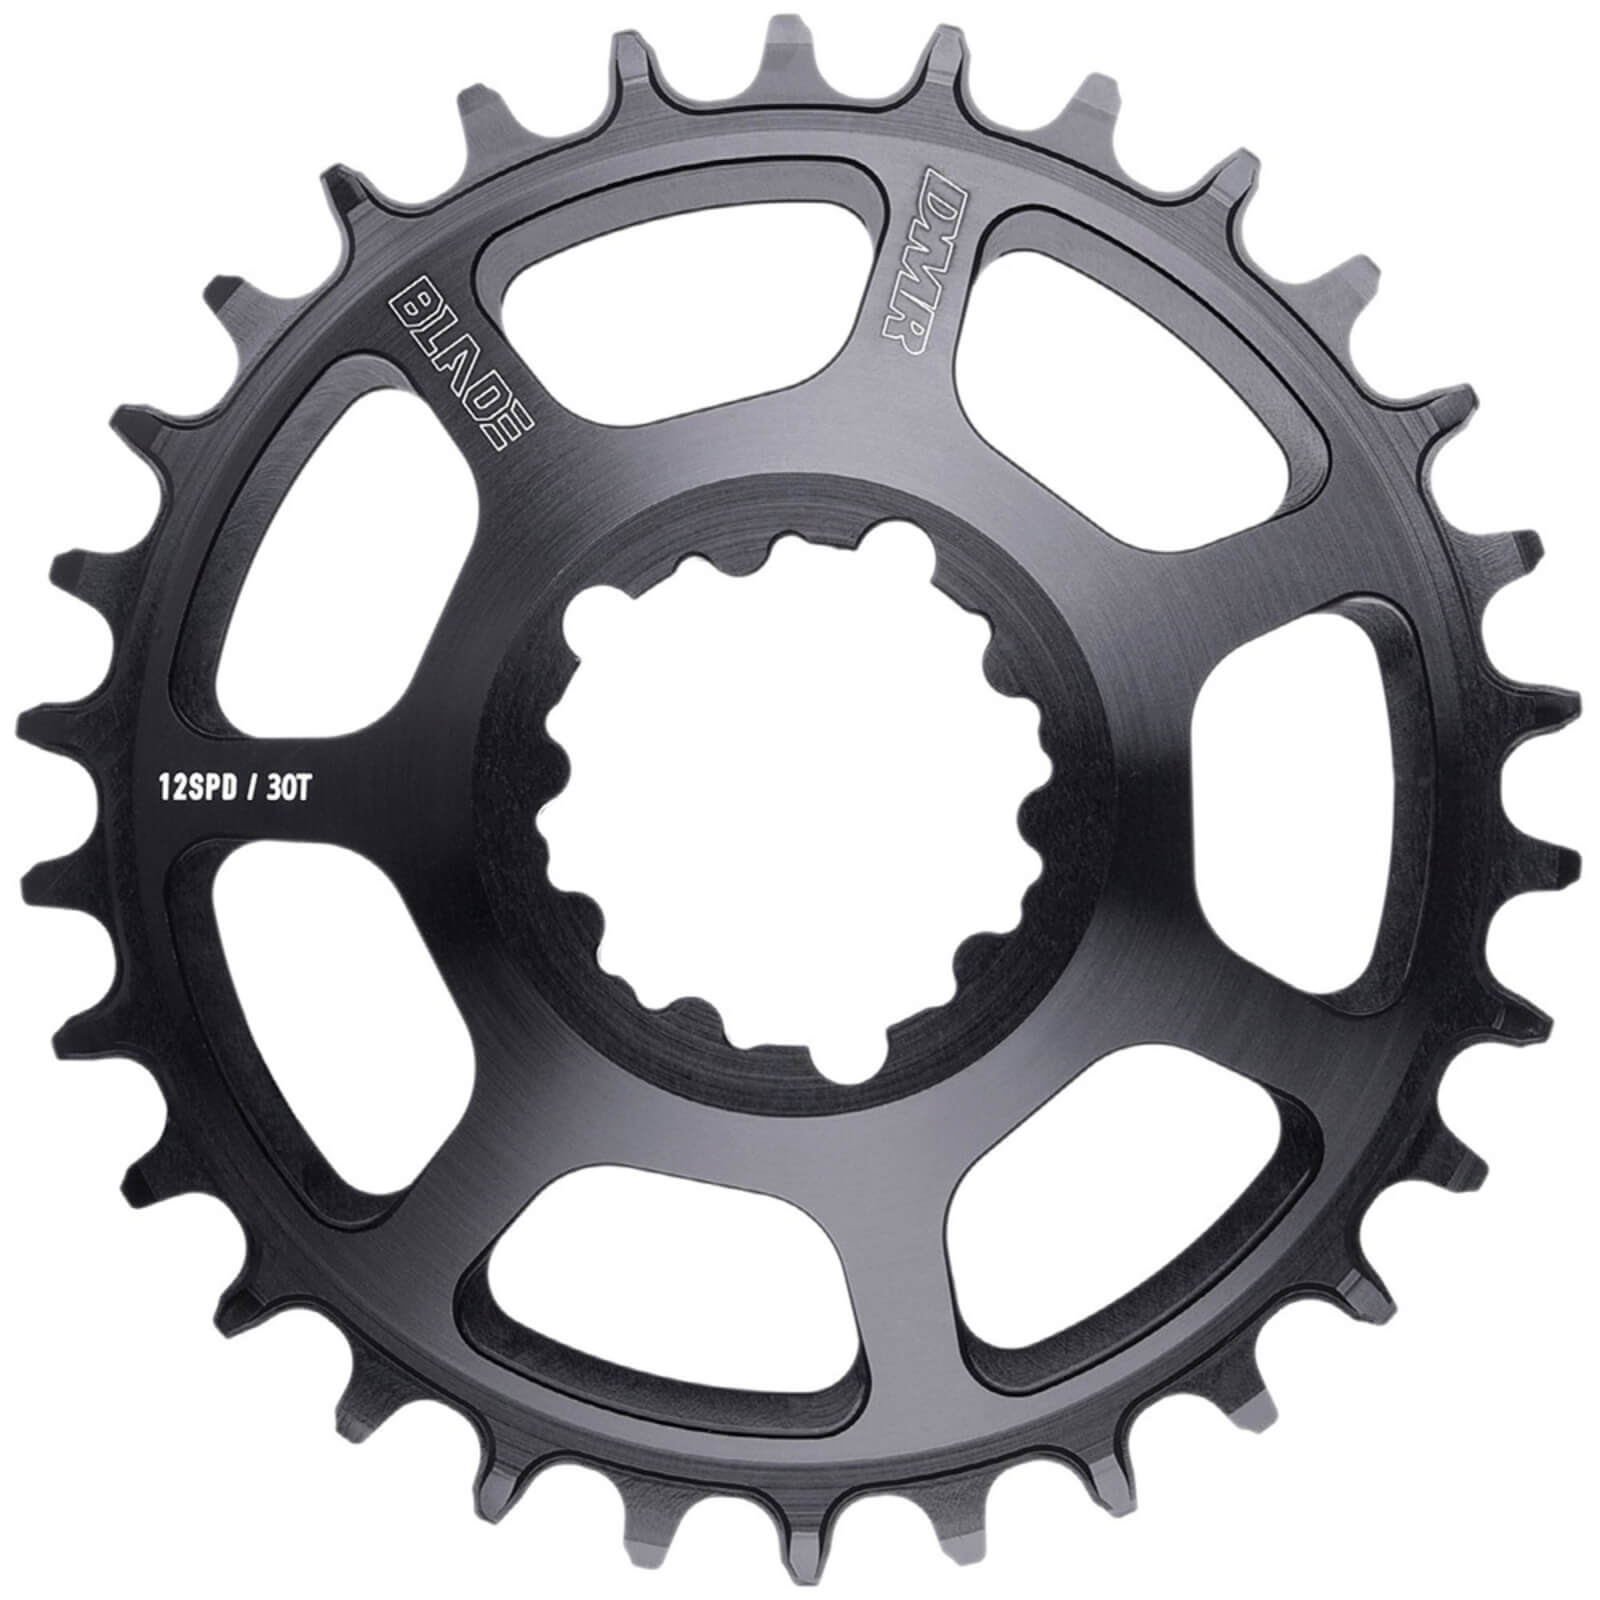 Dmr Blade 12 Speed Direct Mount Chain Ring - 34t - Non-boost